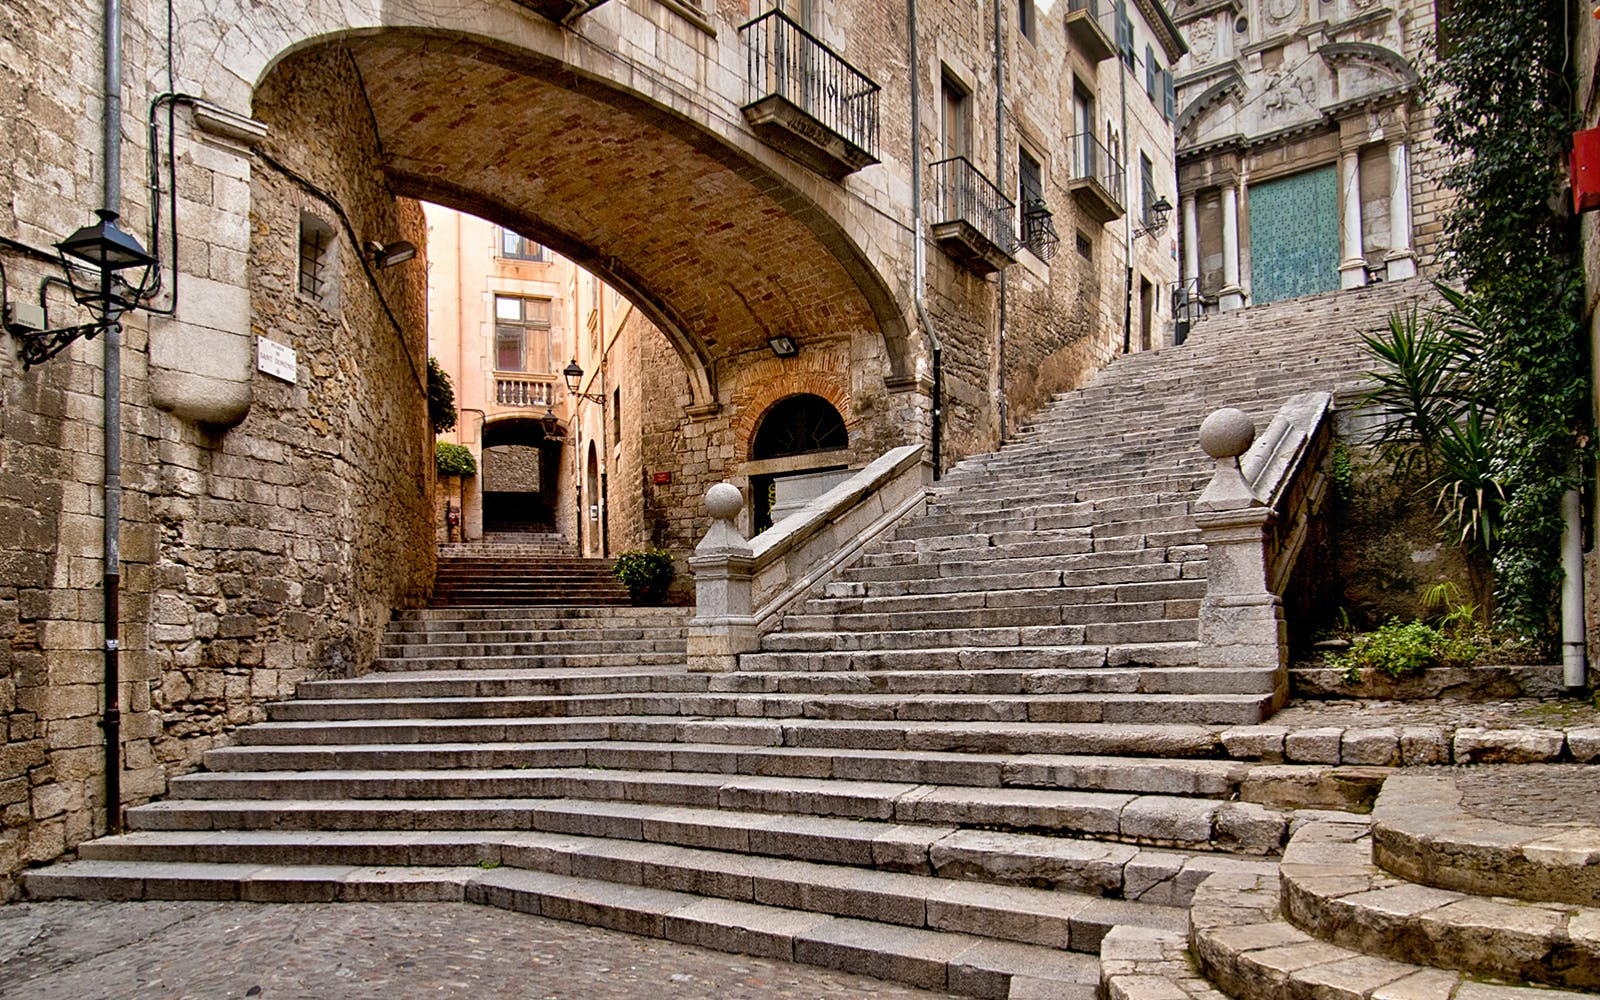 girona game of thrones city-2